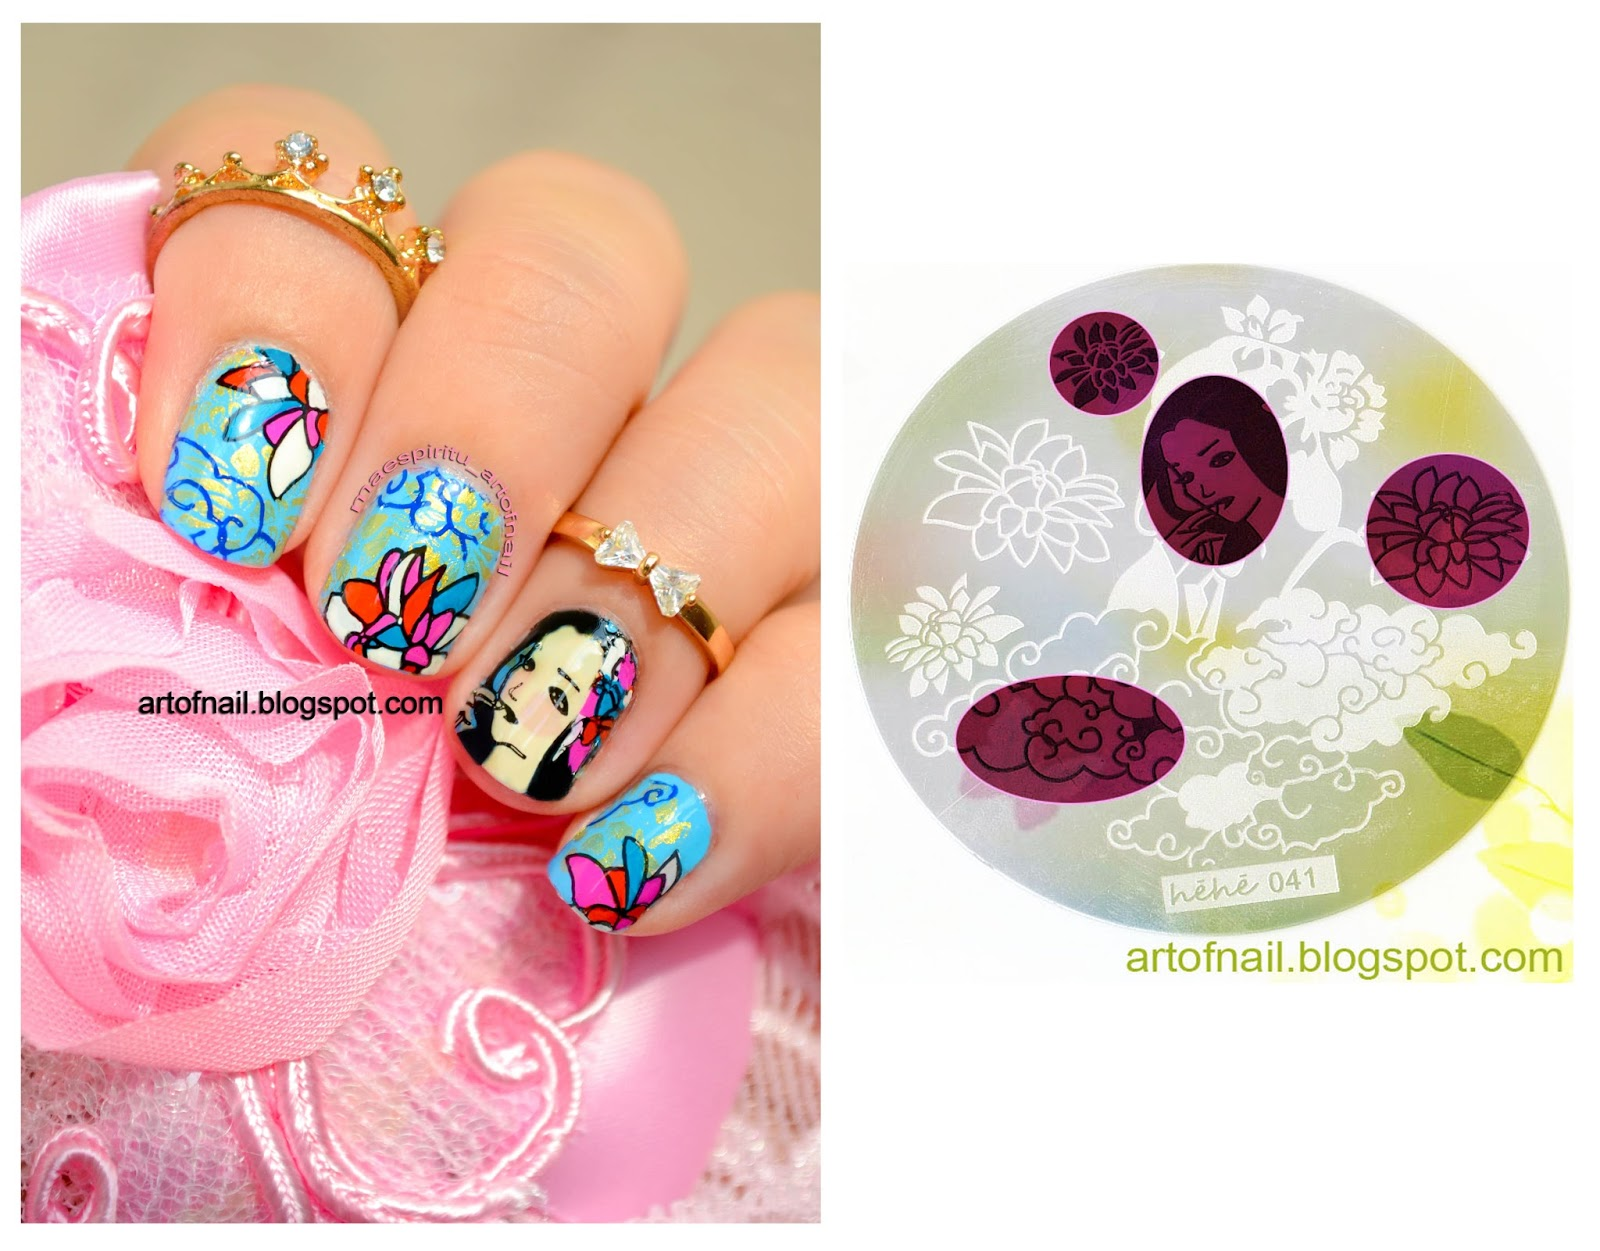 Art of nail october 2015 lotus cloud woman flower nail art stamp template image plate hehe041 299 usd dhlflorist Image collections